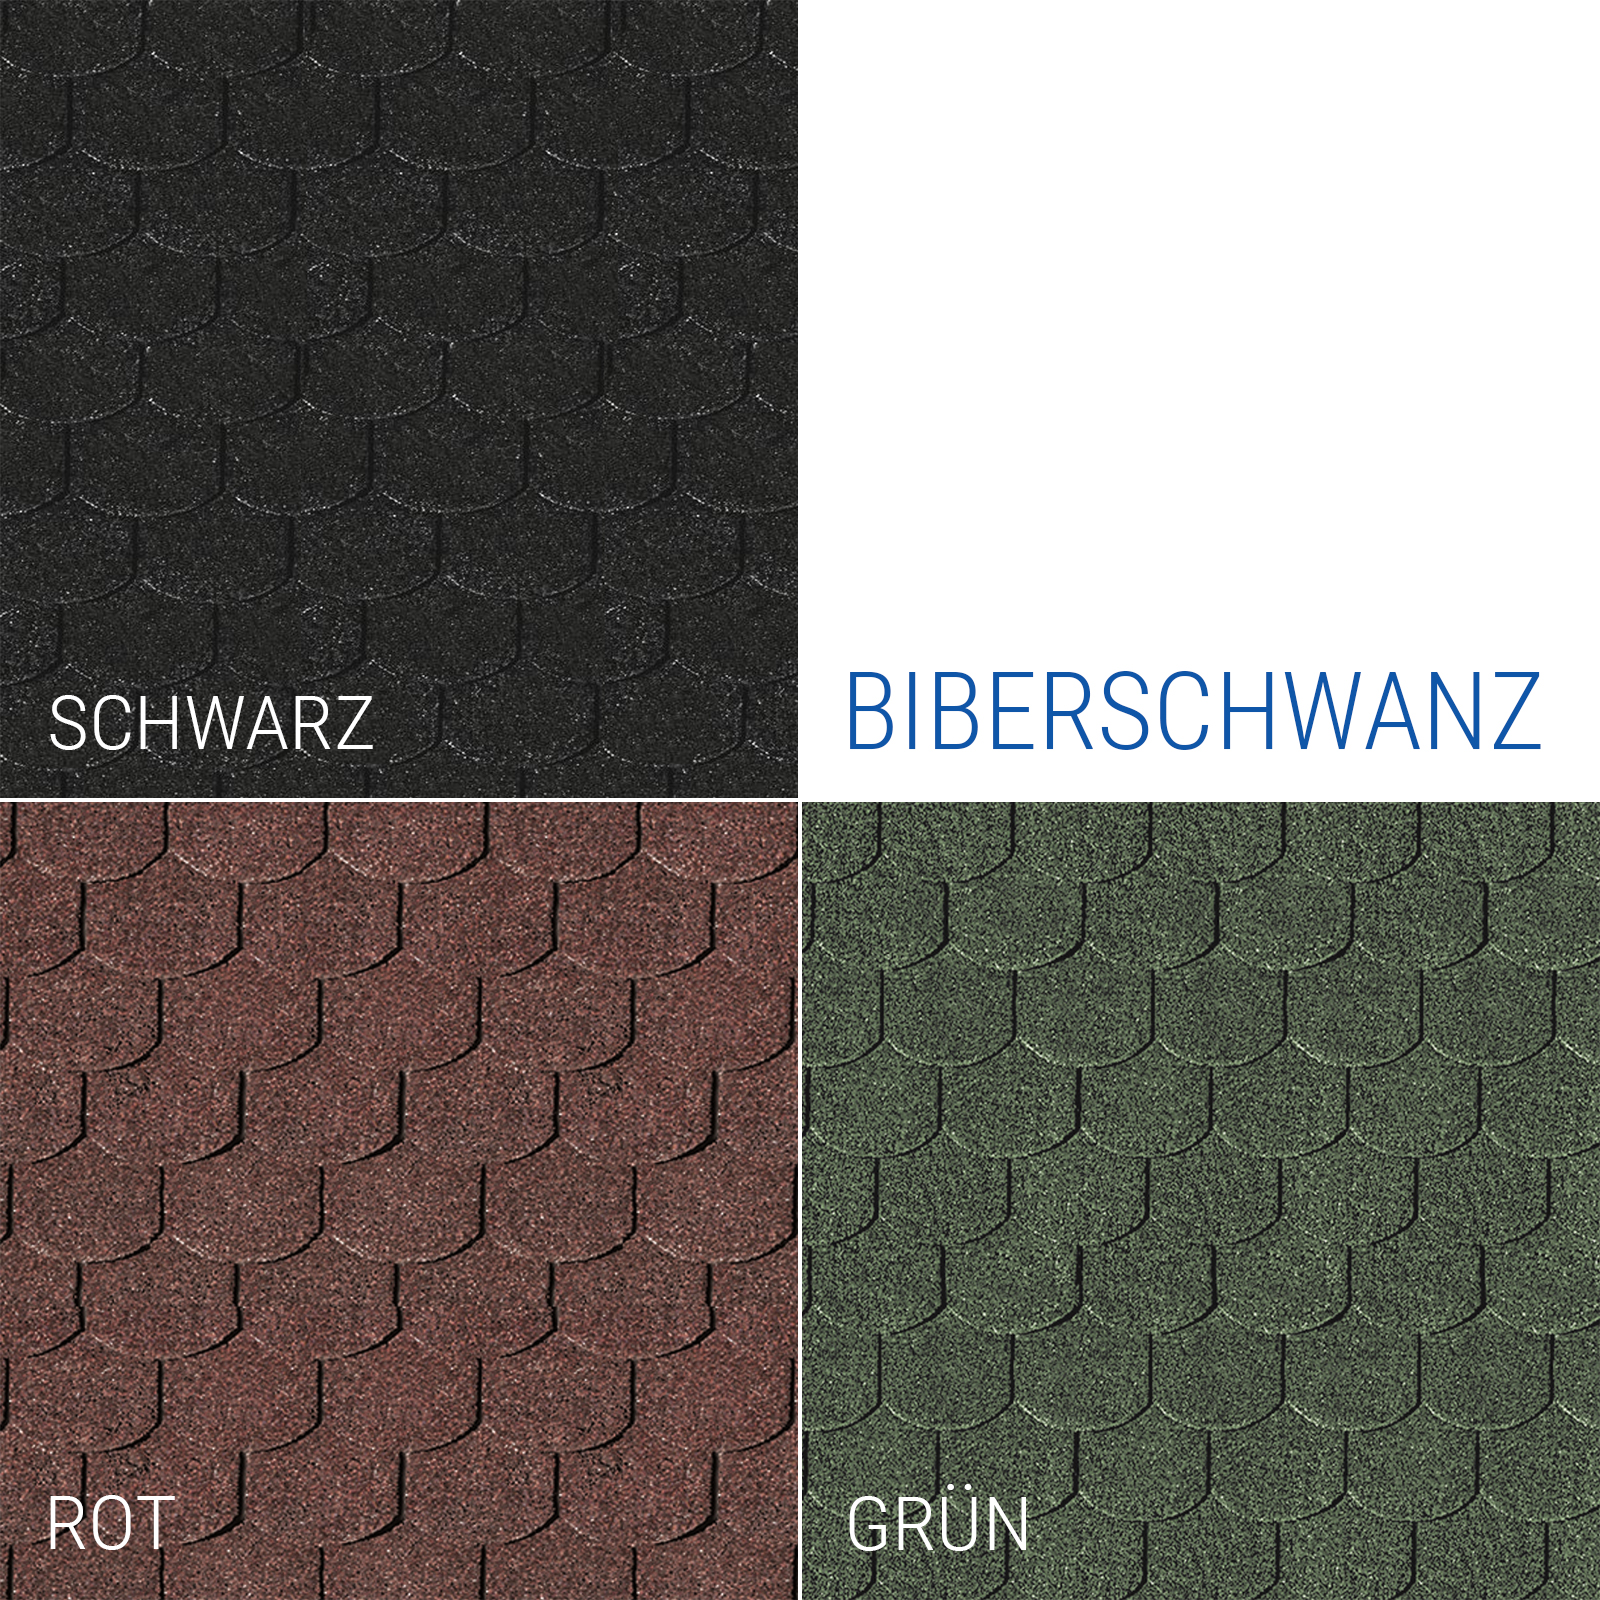 dachschindeln biberschwanz bitumen rot schwarz gr n. Black Bedroom Furniture Sets. Home Design Ideas